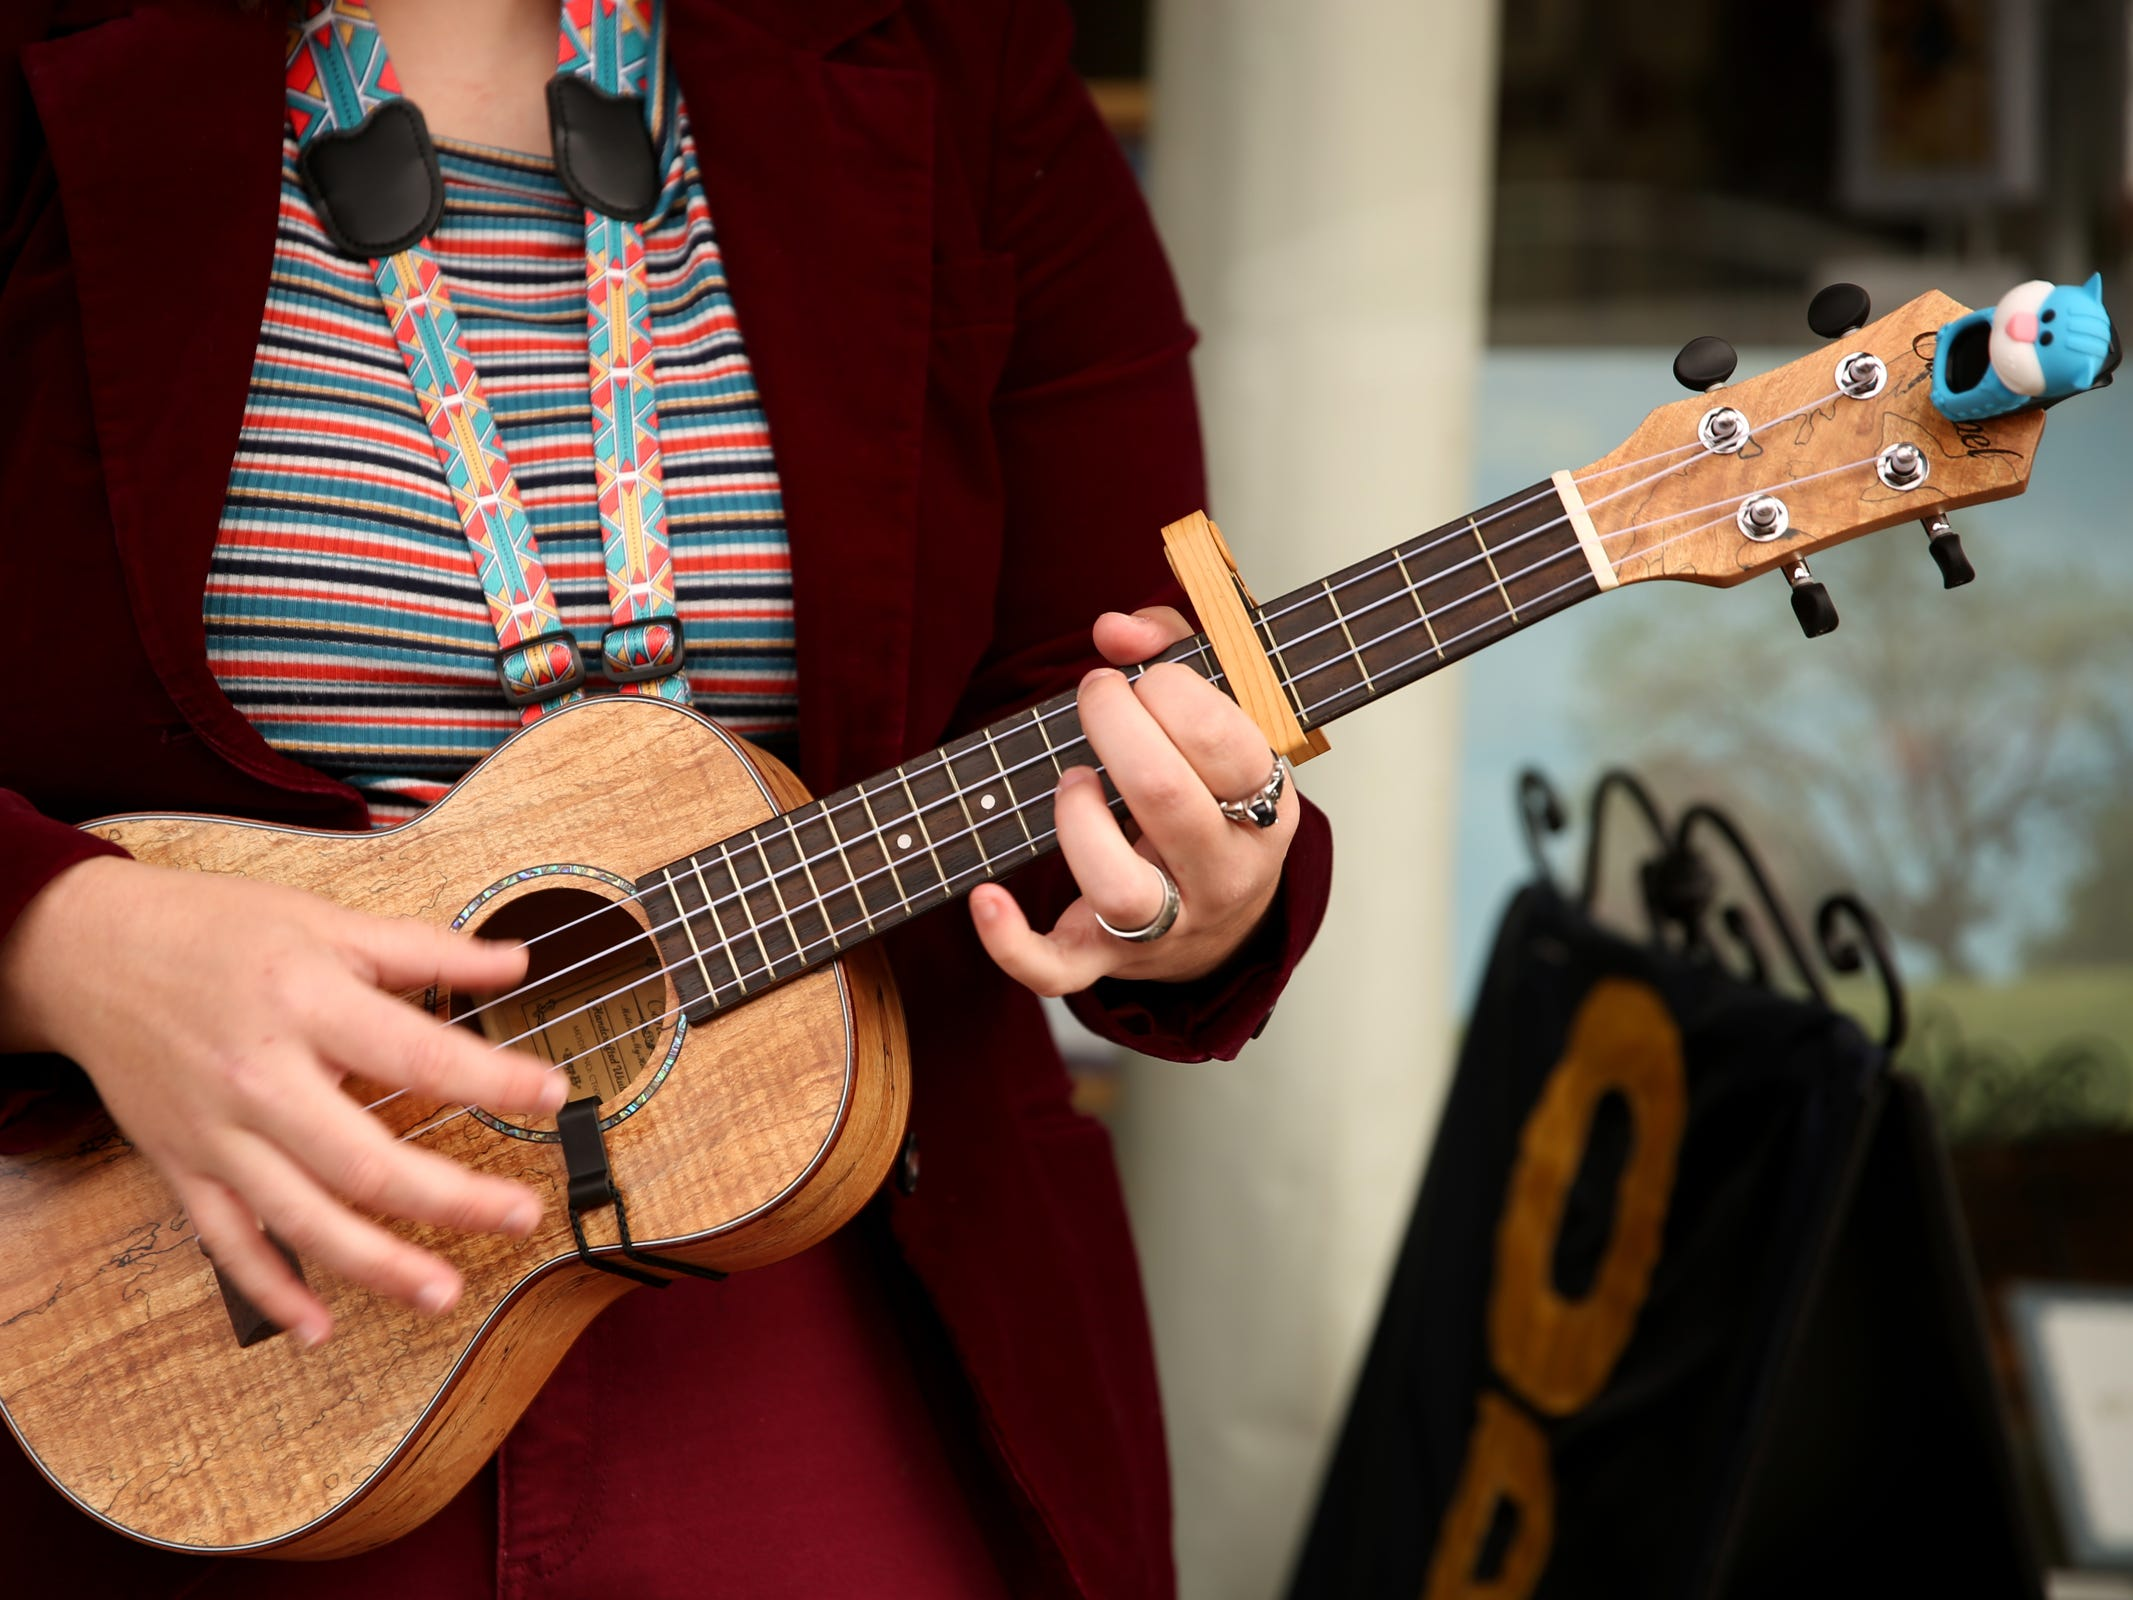 Camryn Davis performs during the Silverton Sidewalk Shindig, a culture of music festival, in downtown Silverton on Saturday, Oct. 6, 2018.